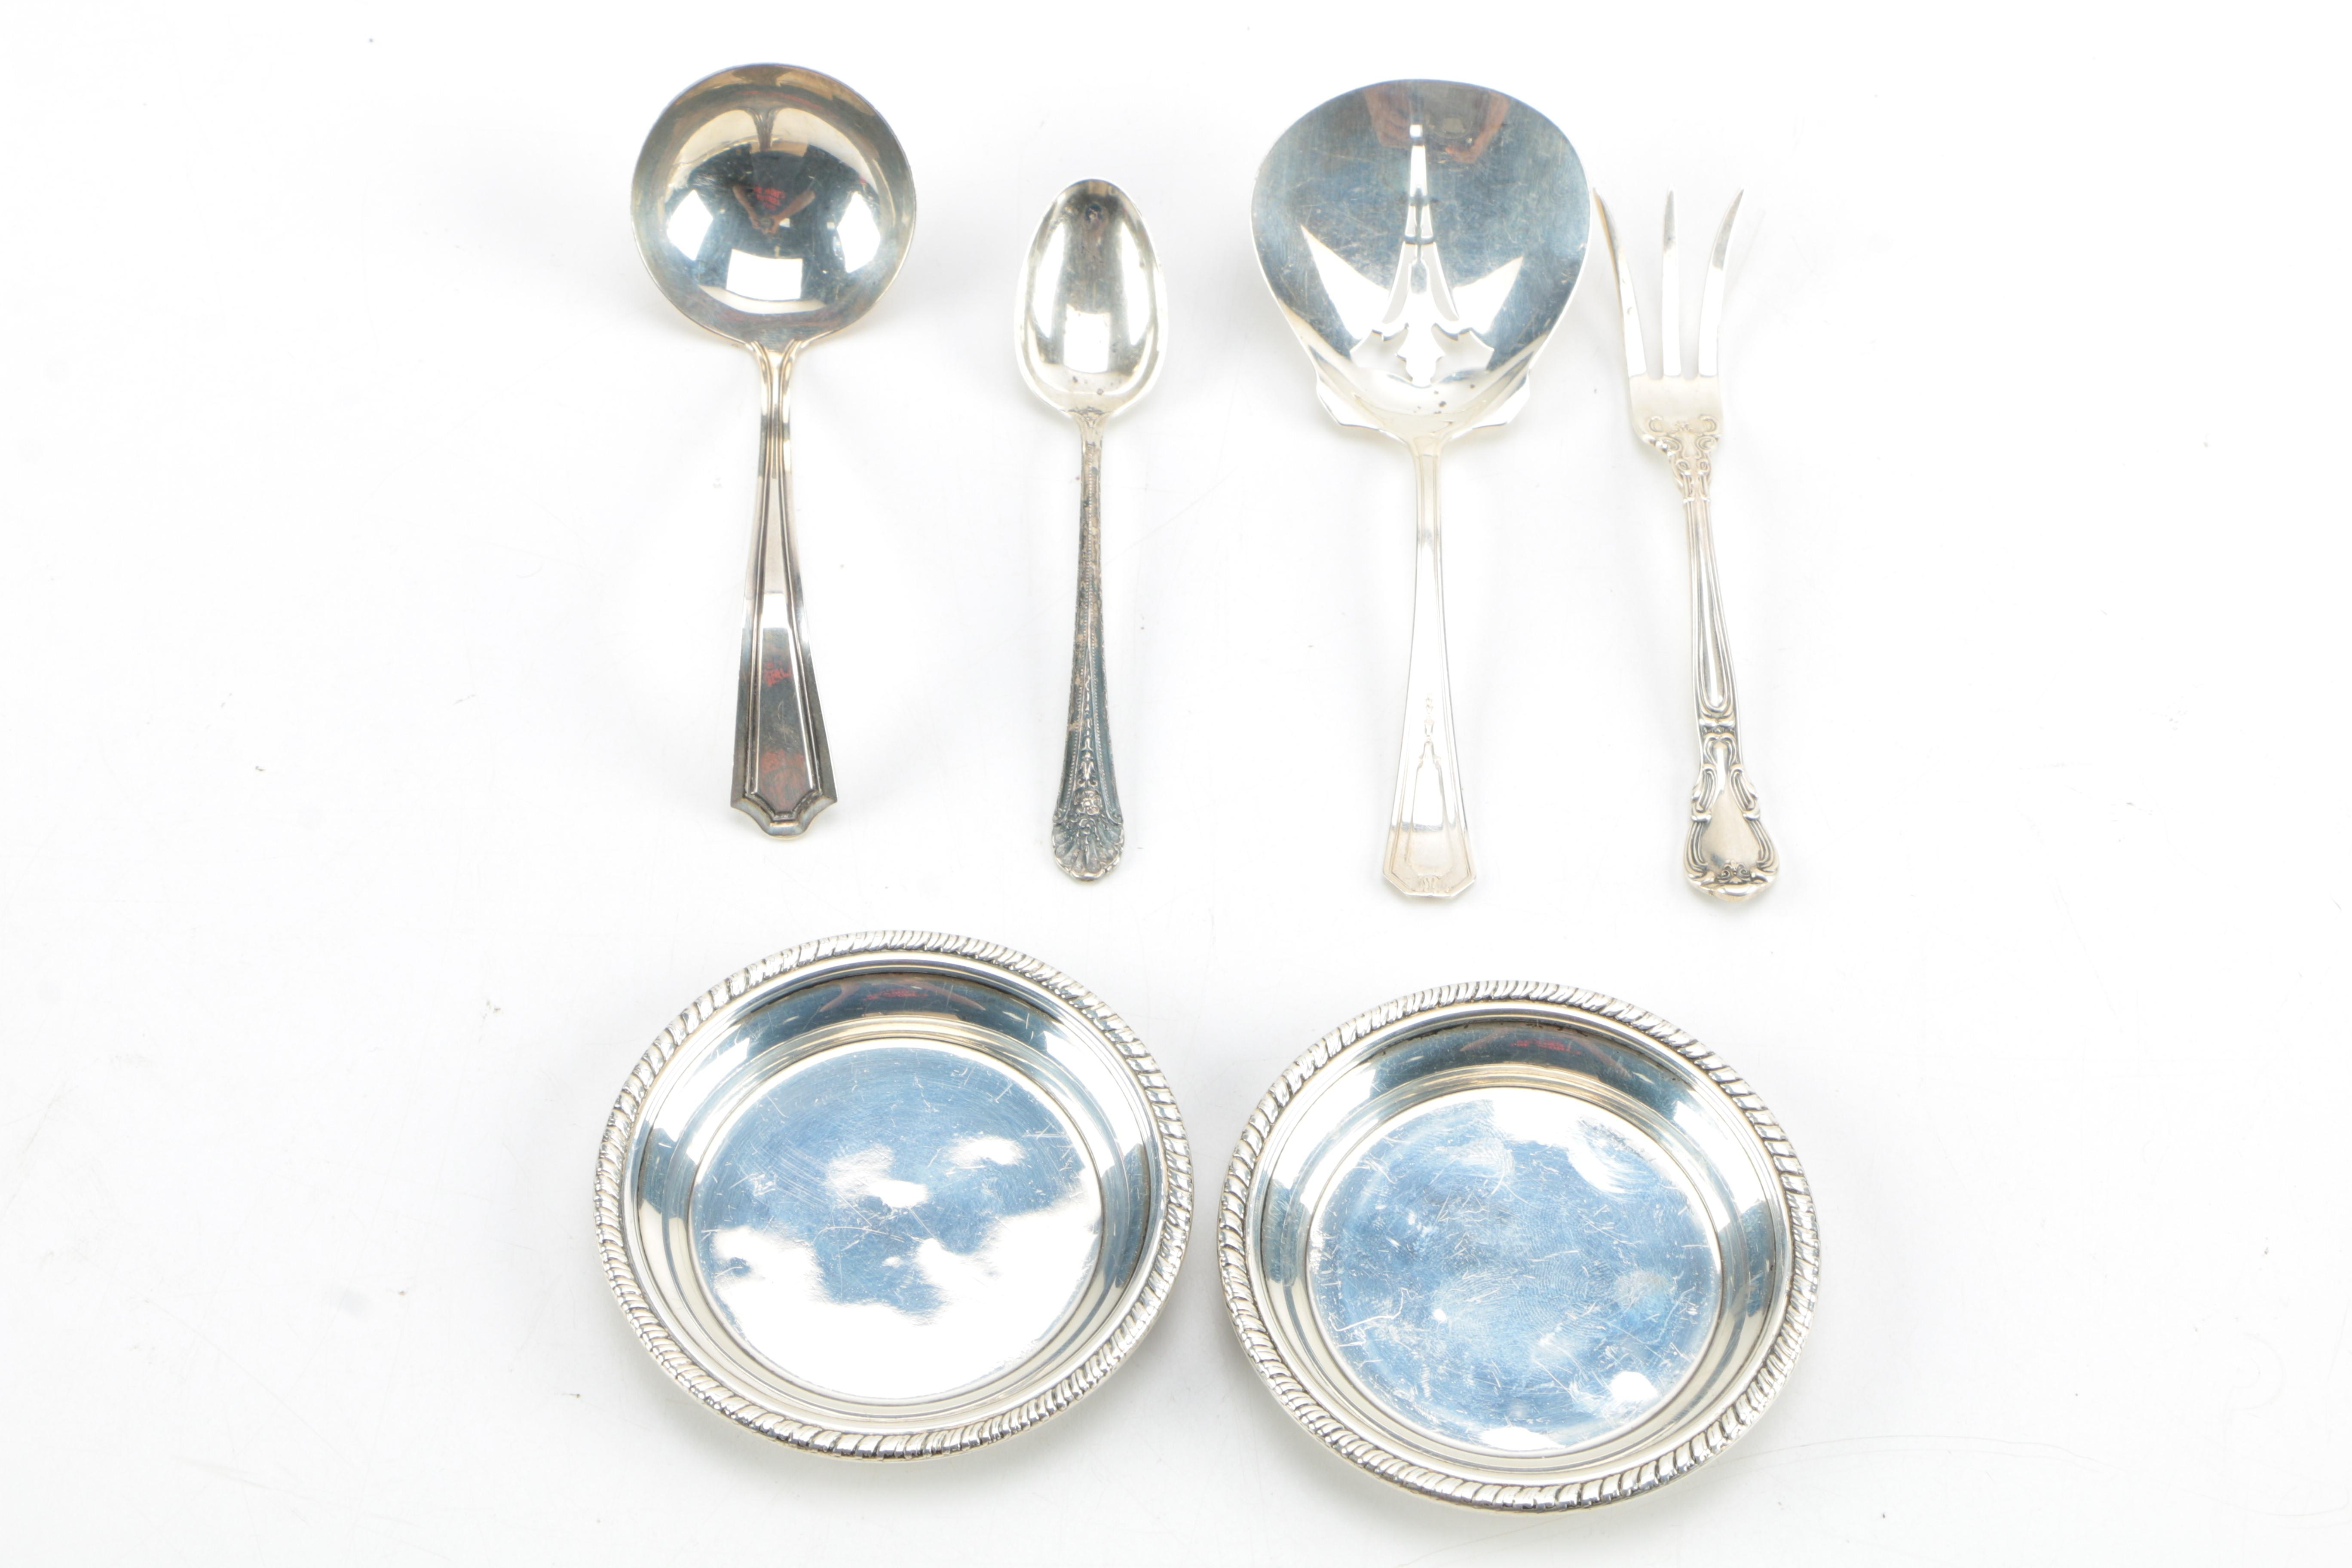 Sterling Silver Serving Utensils and Dishes Featuring Towle